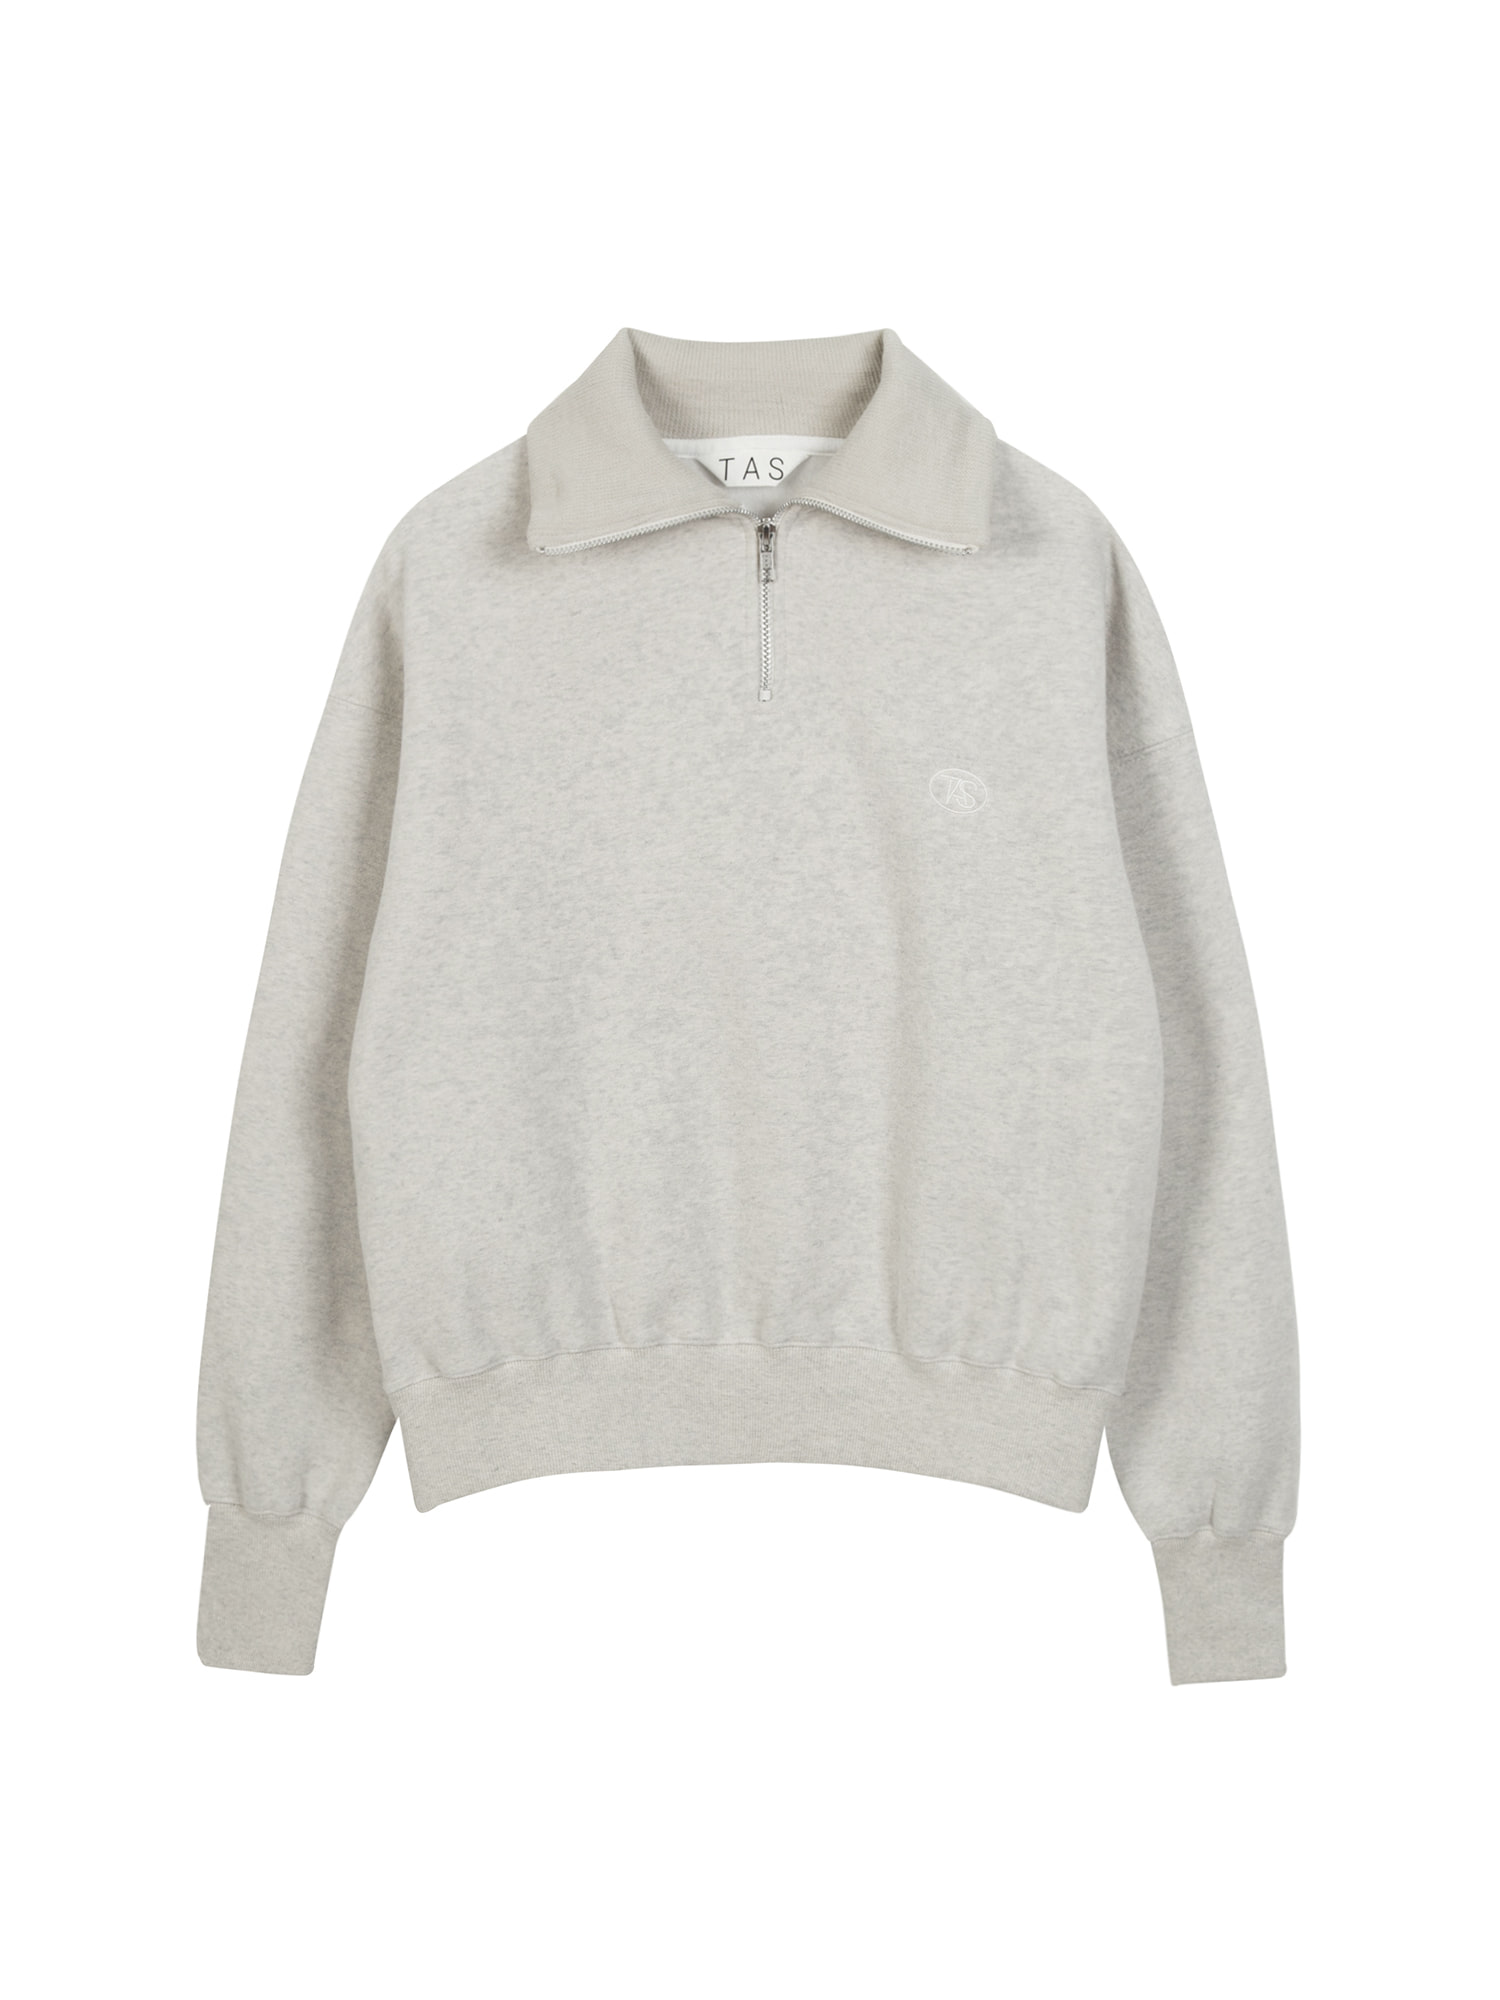 tas zip up sweat shirt (Oat)